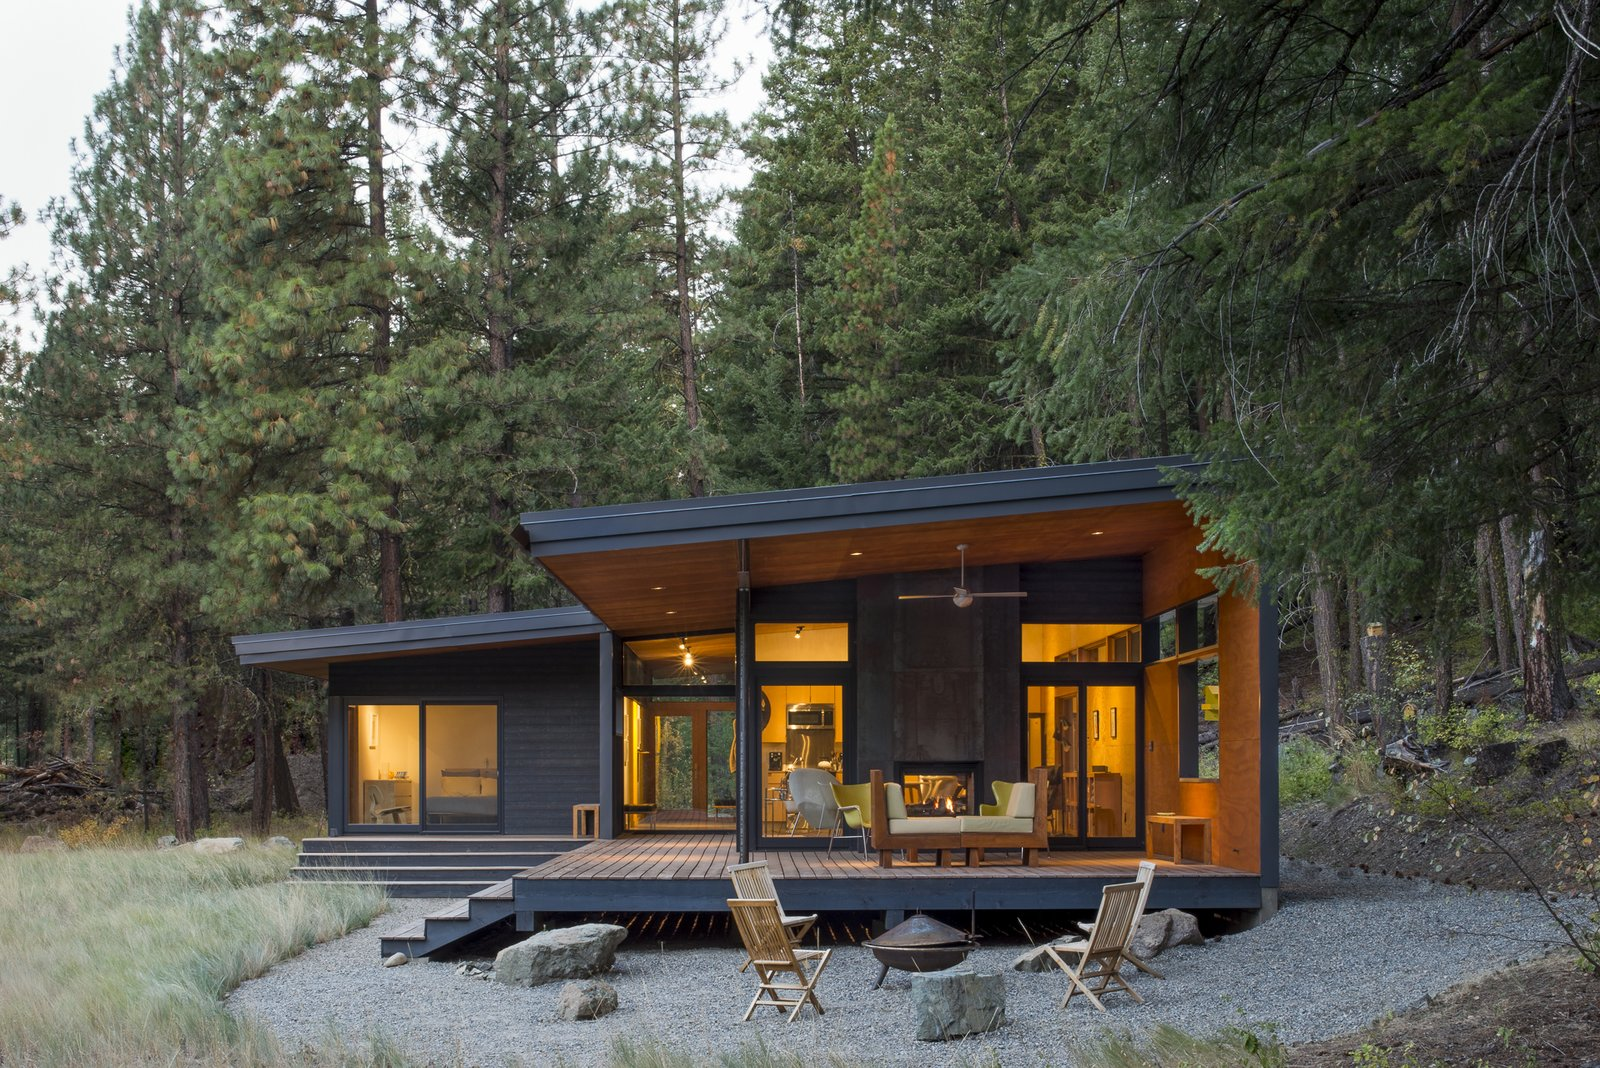 Exterior, Cabin Building Type, Shed RoofLine, and Wood Siding Material At night, the quiet drama of the shed roof's angles glows against the darkened forest.  Lot 6 by Prentiss + Balance + Wickline Architects